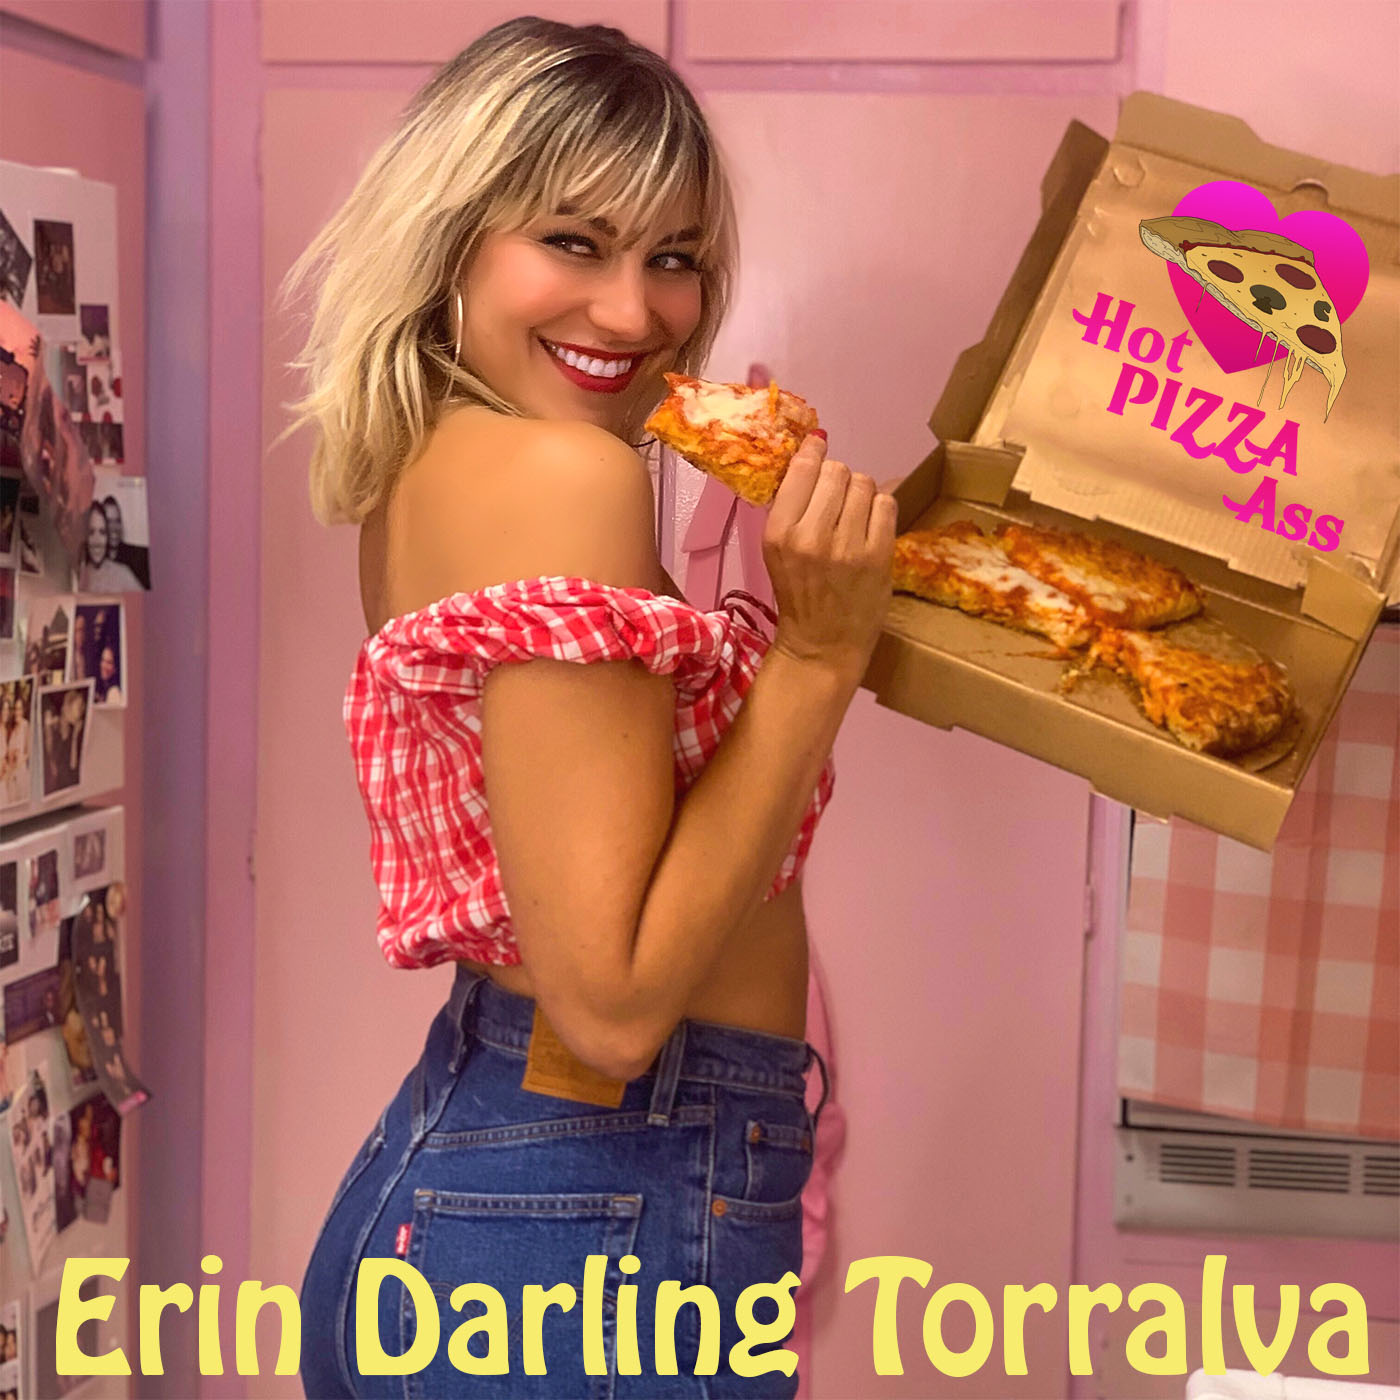 Artwork for Coronavirus Questions Answered by an Epidemiologist - Quarantine TV on Hot Pizza Ass